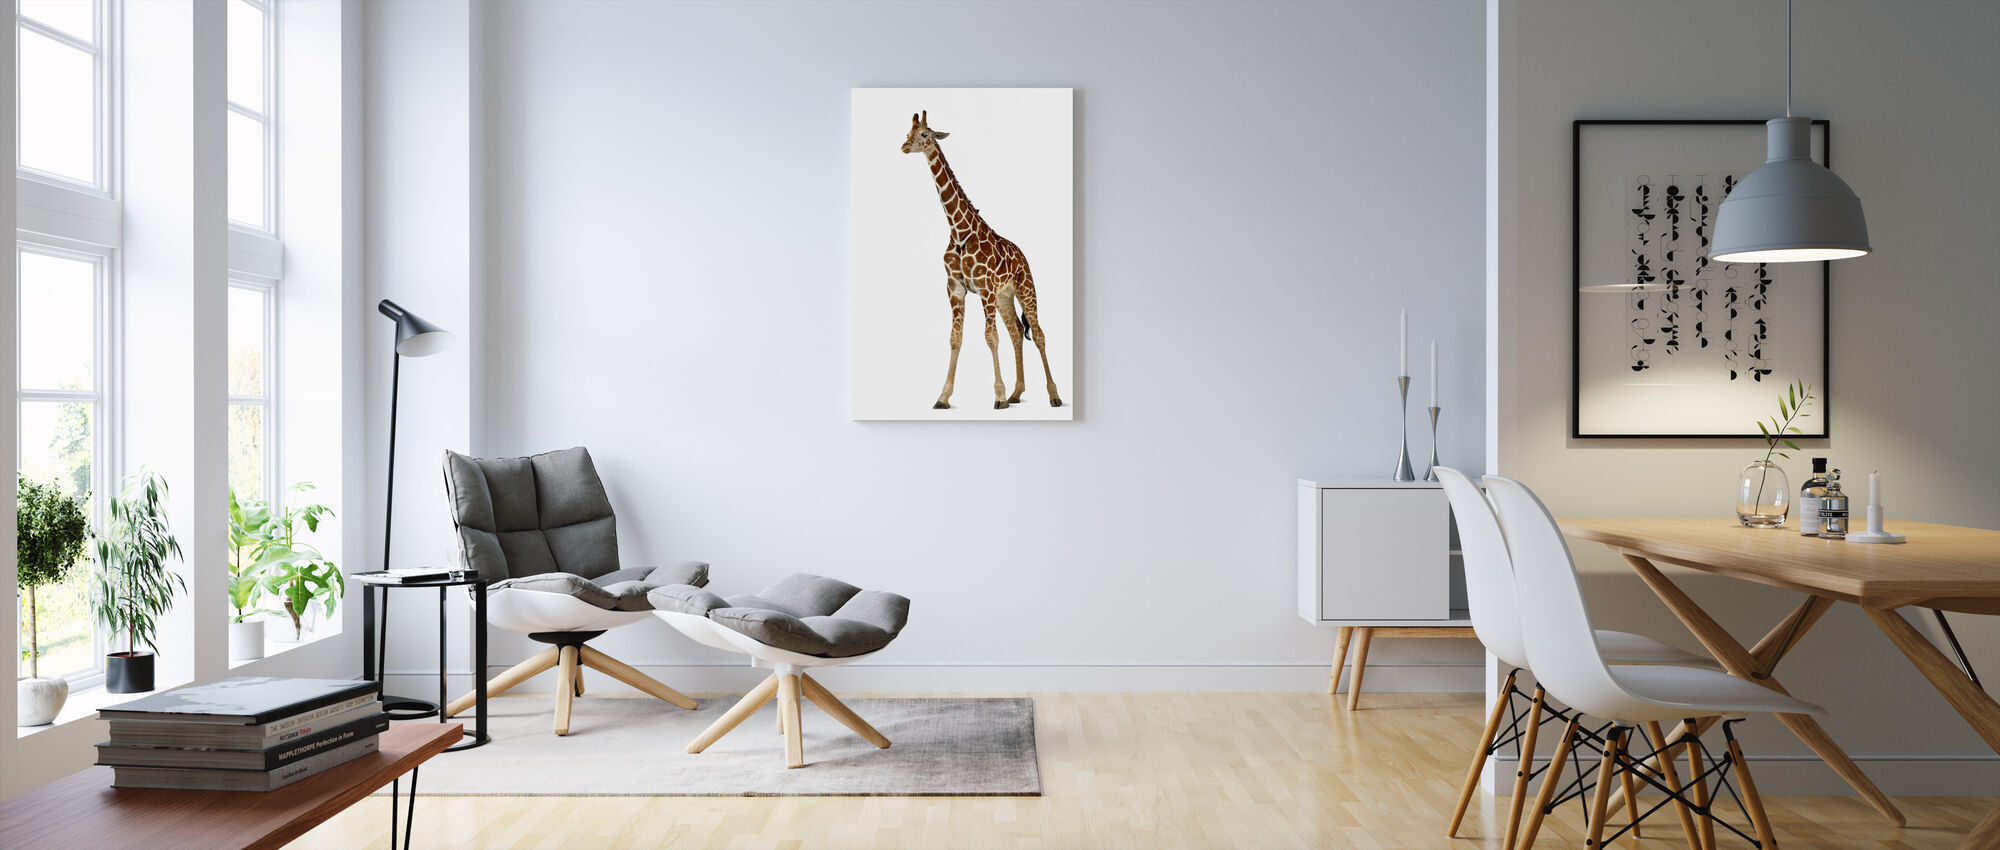 Young Giraffe - Canvas print - Living Room